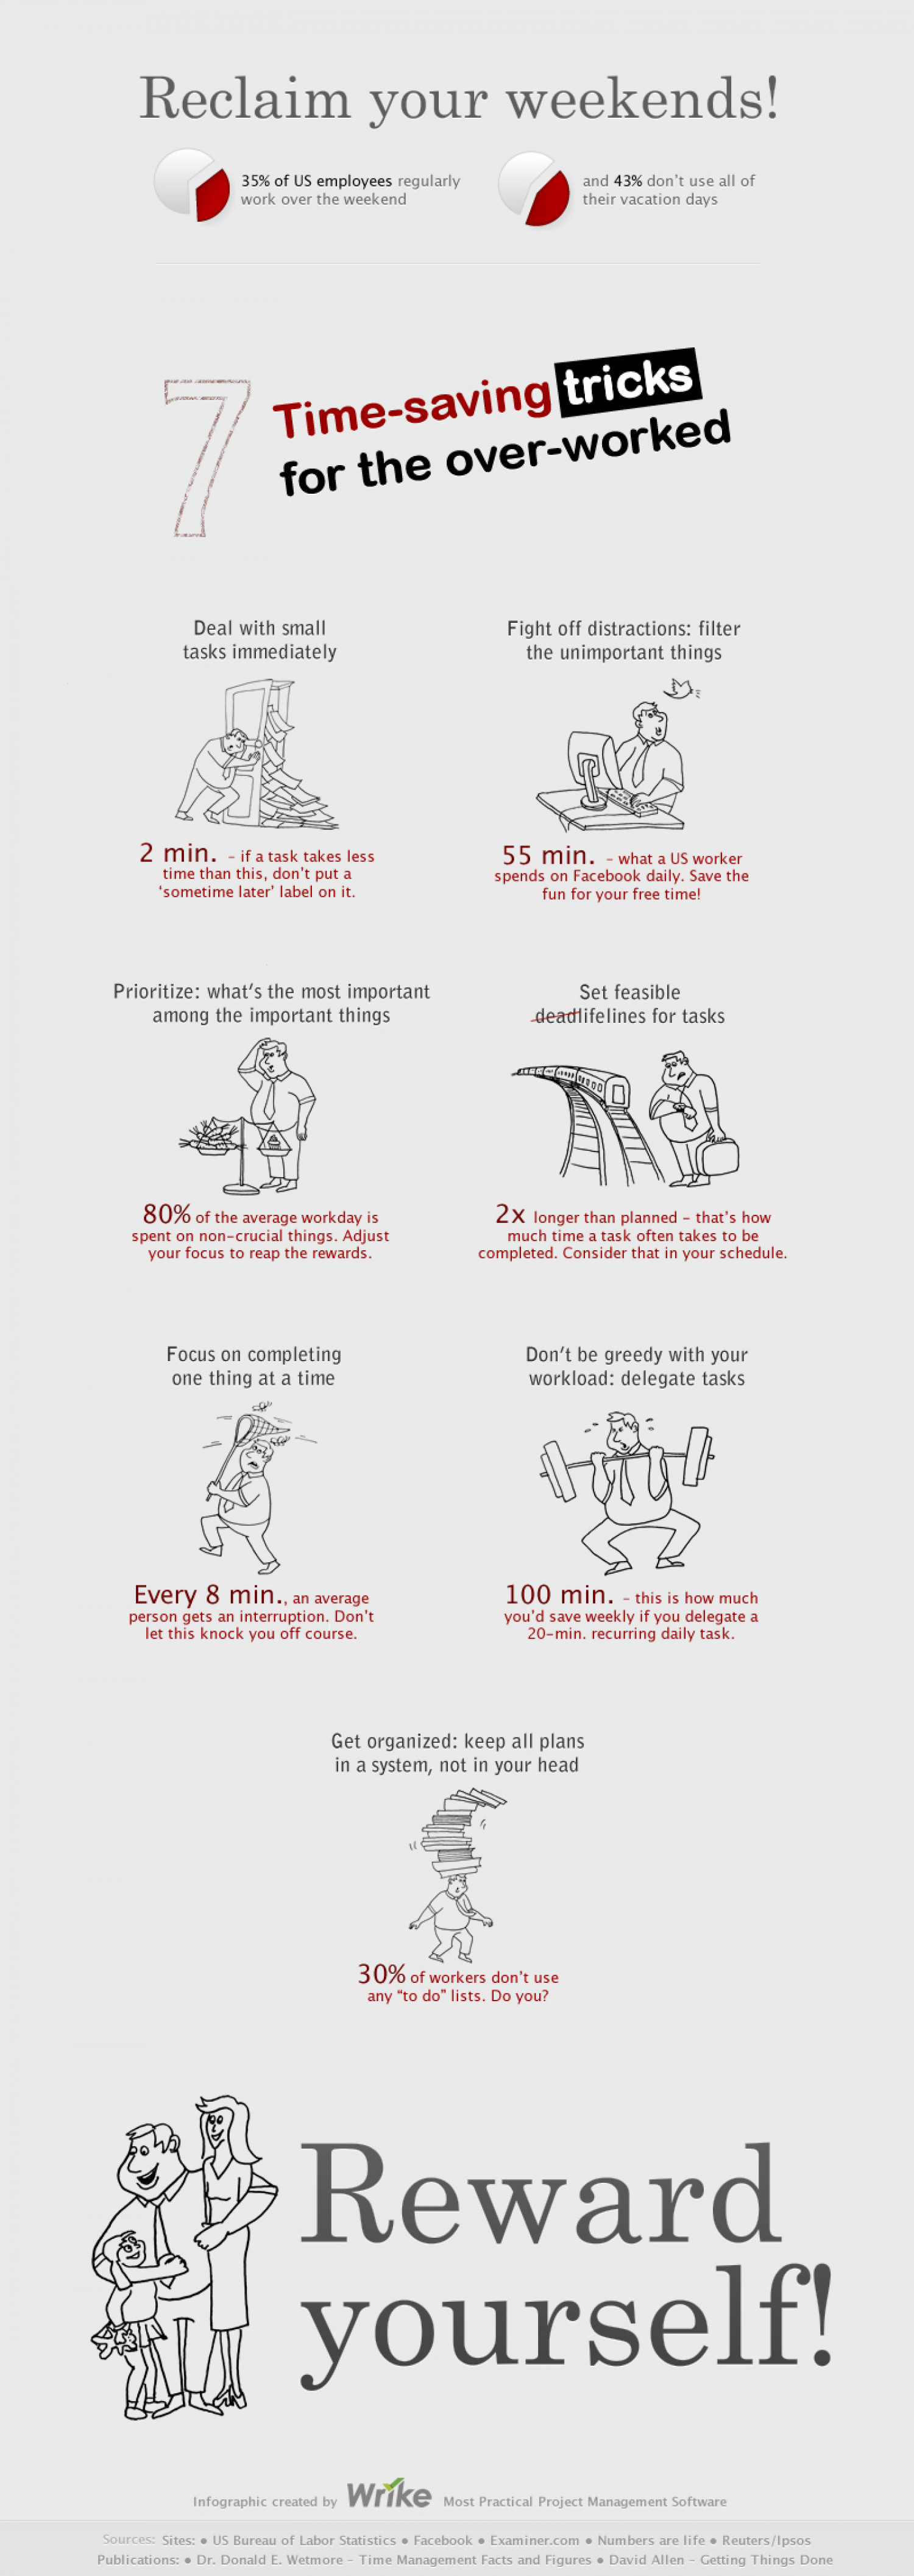 7 Time-Savers for the Overworked Infographic